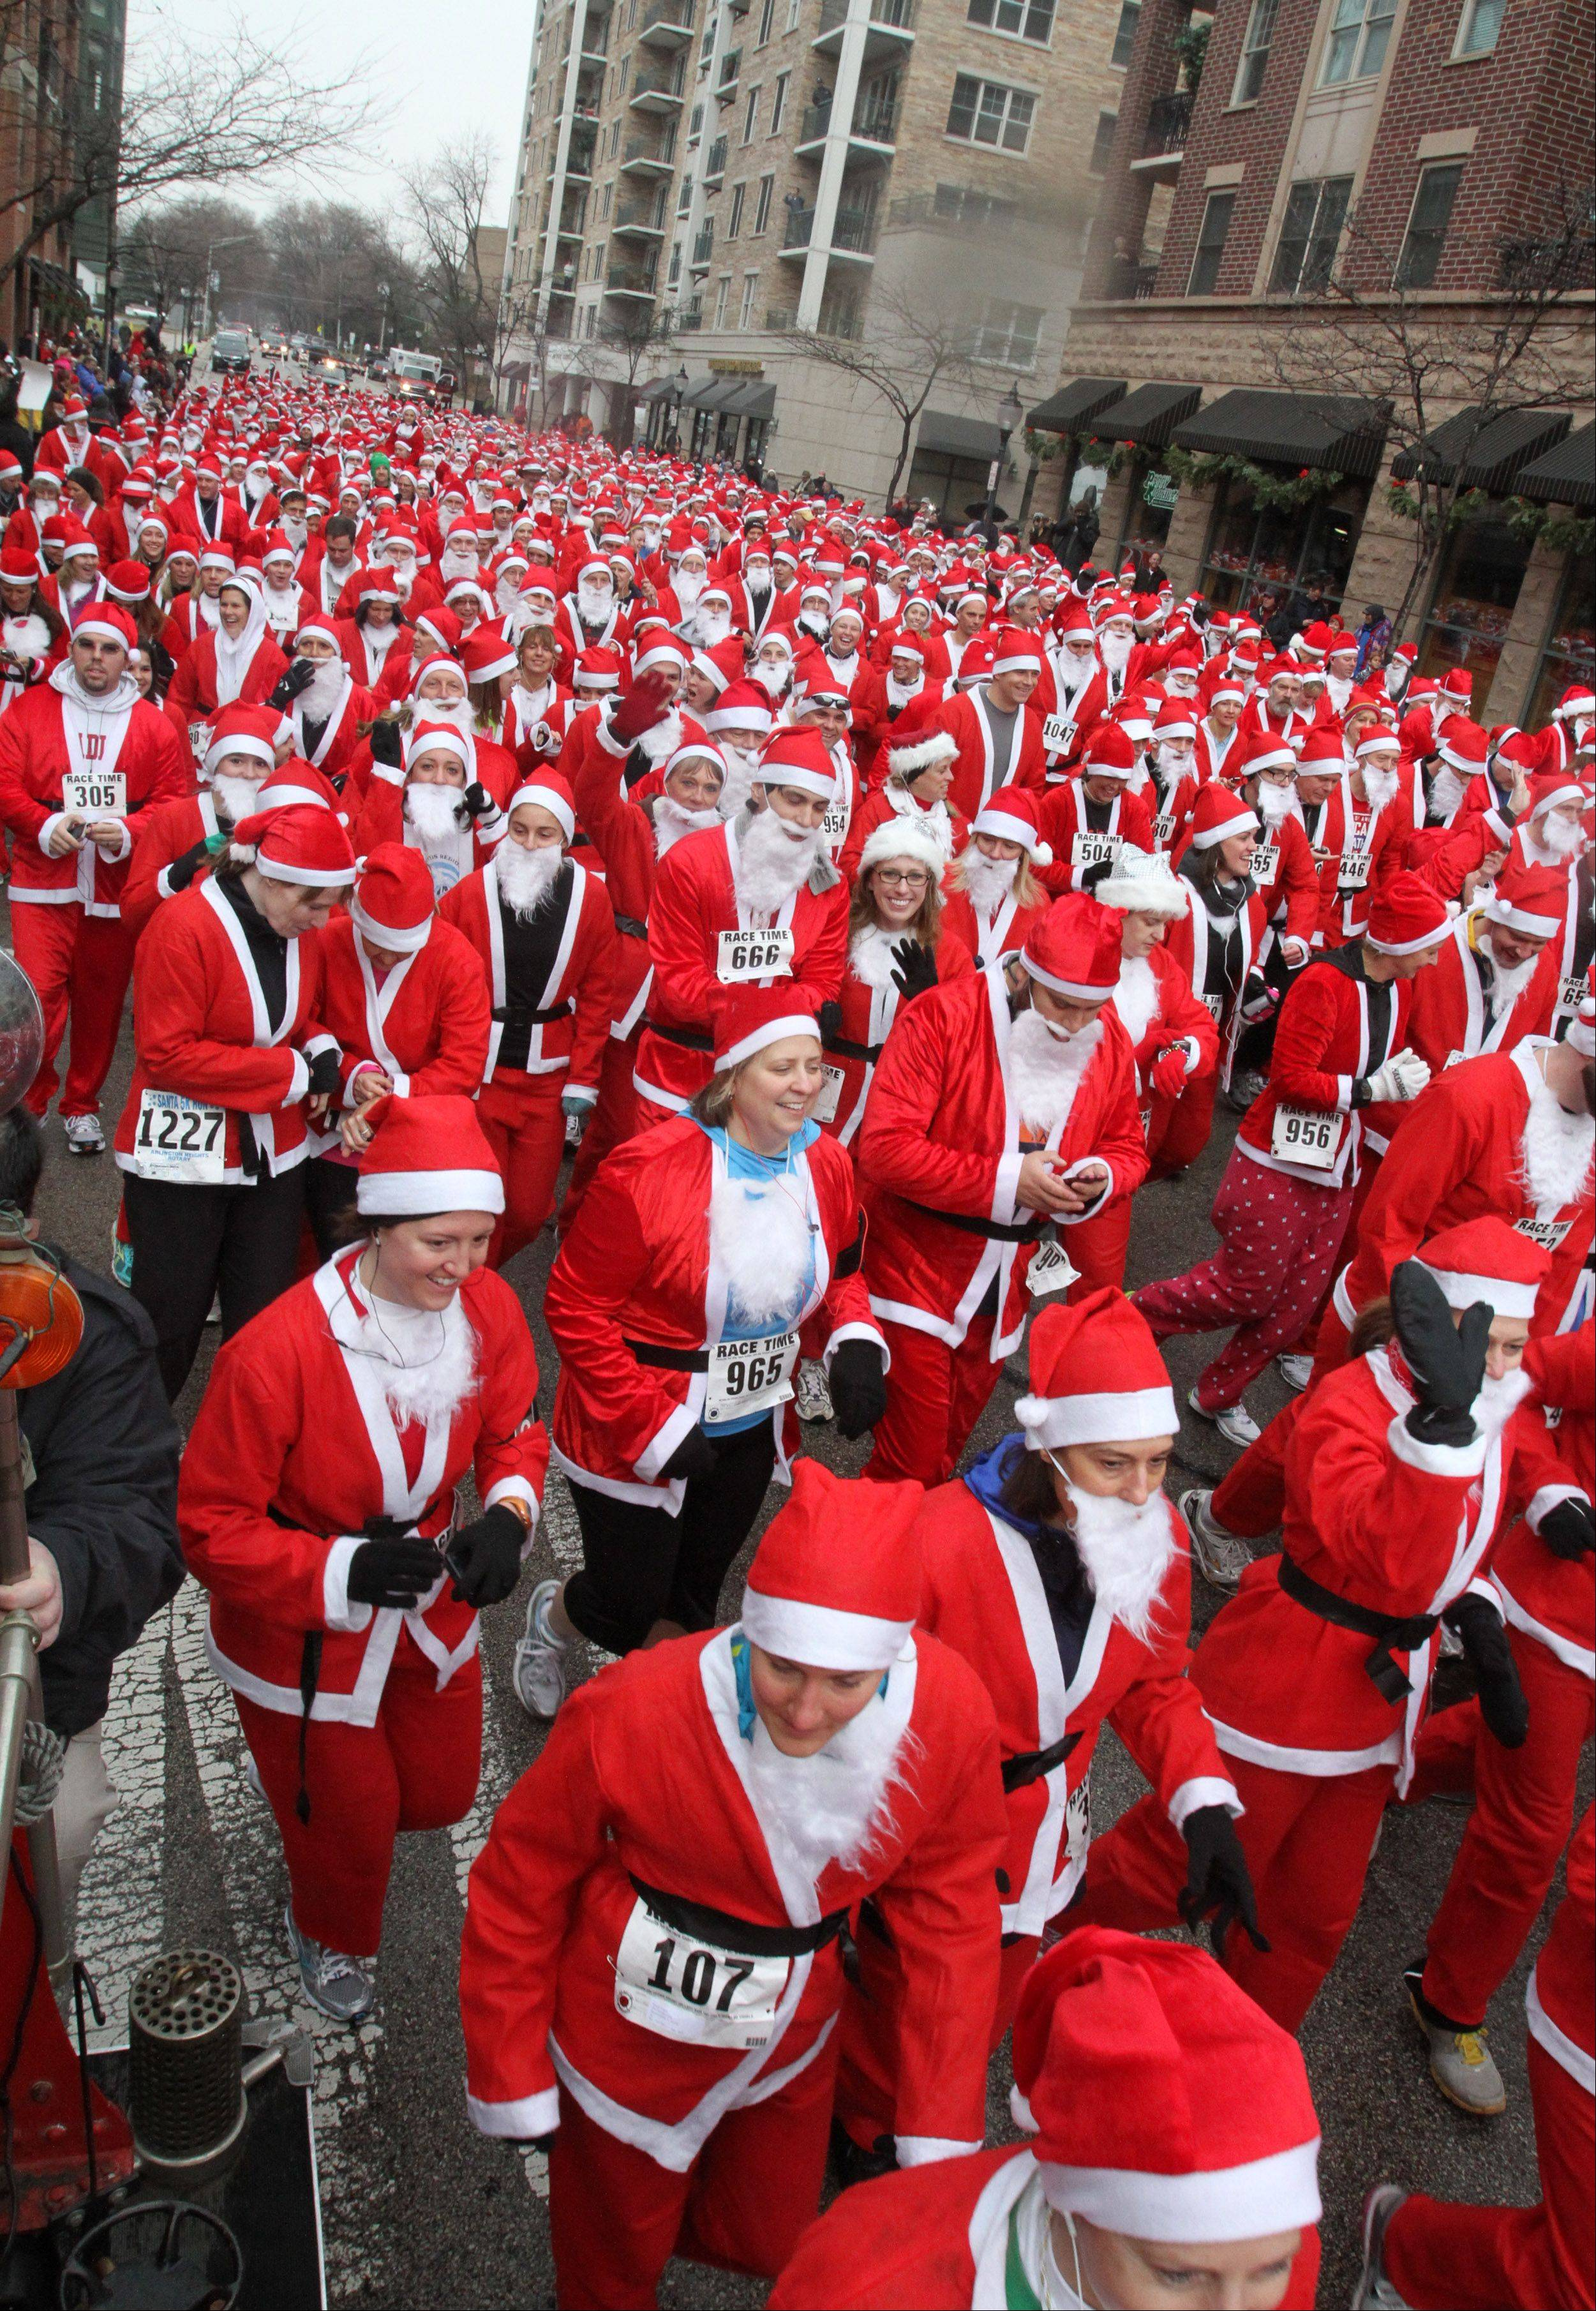 The Arlington Heights Rotary Club has 2,000 Santa suits available for this year's Rotary Santa Run on Saturday, Dec. 3.